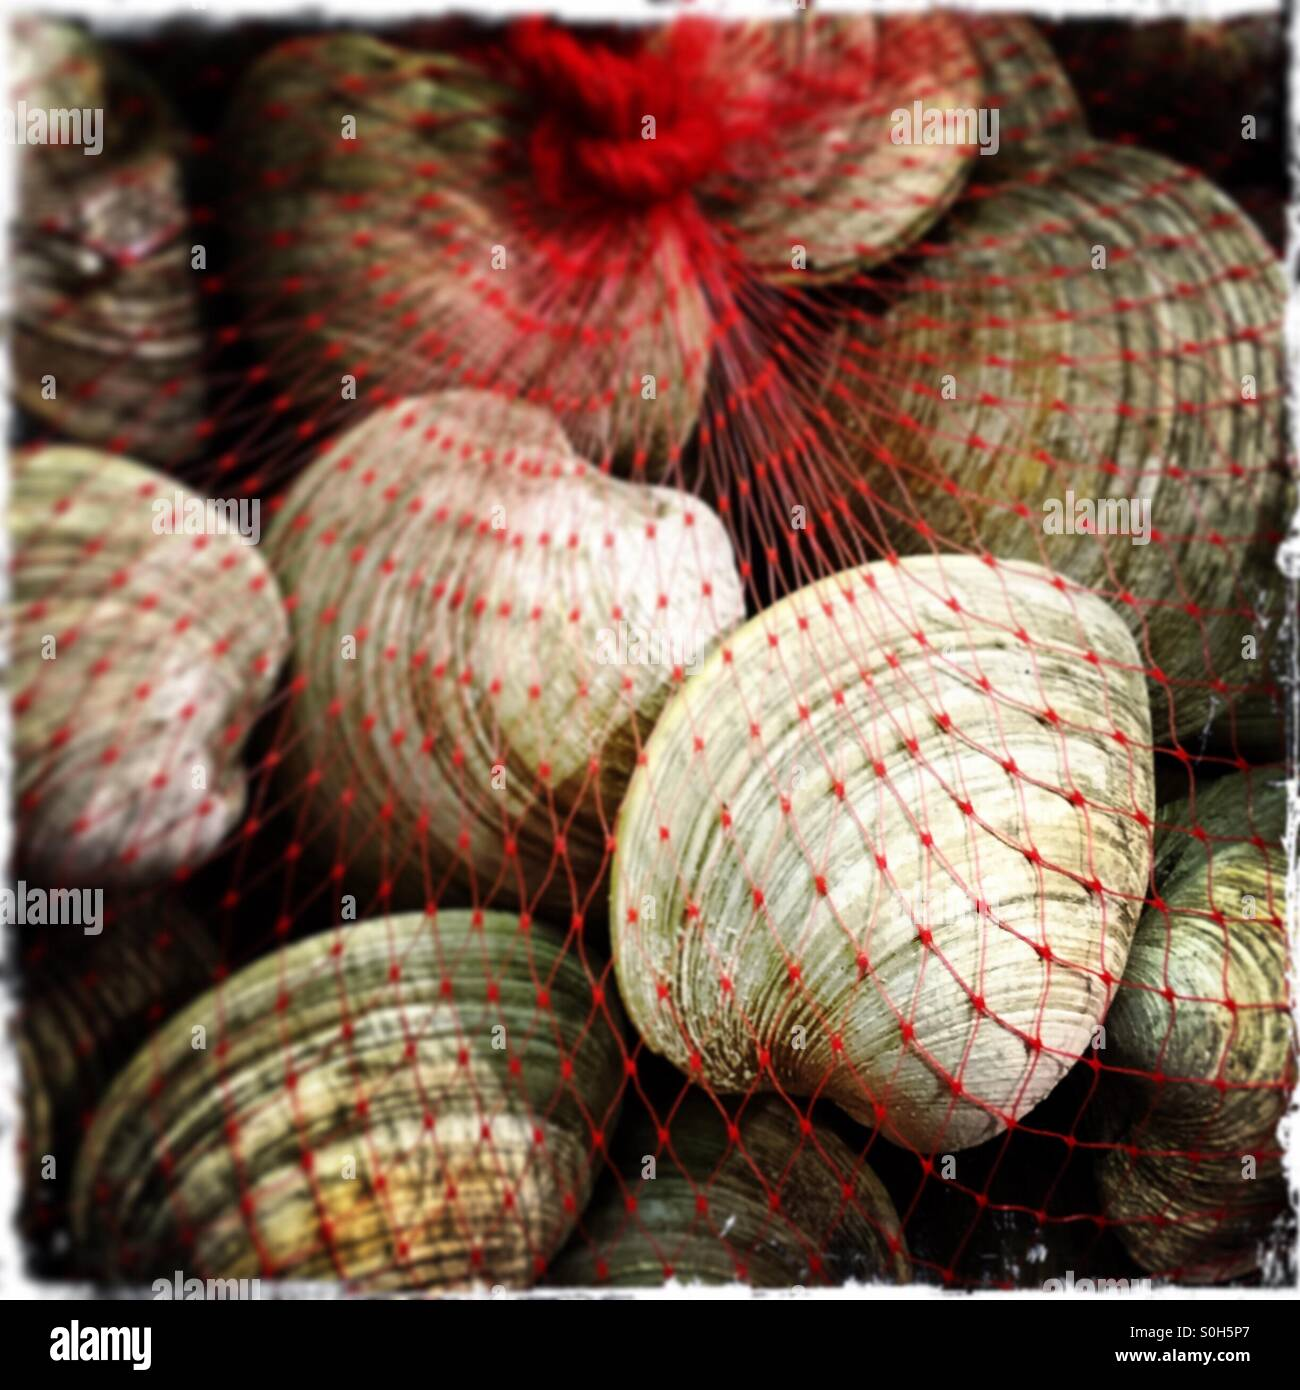 Clams - Stock Image